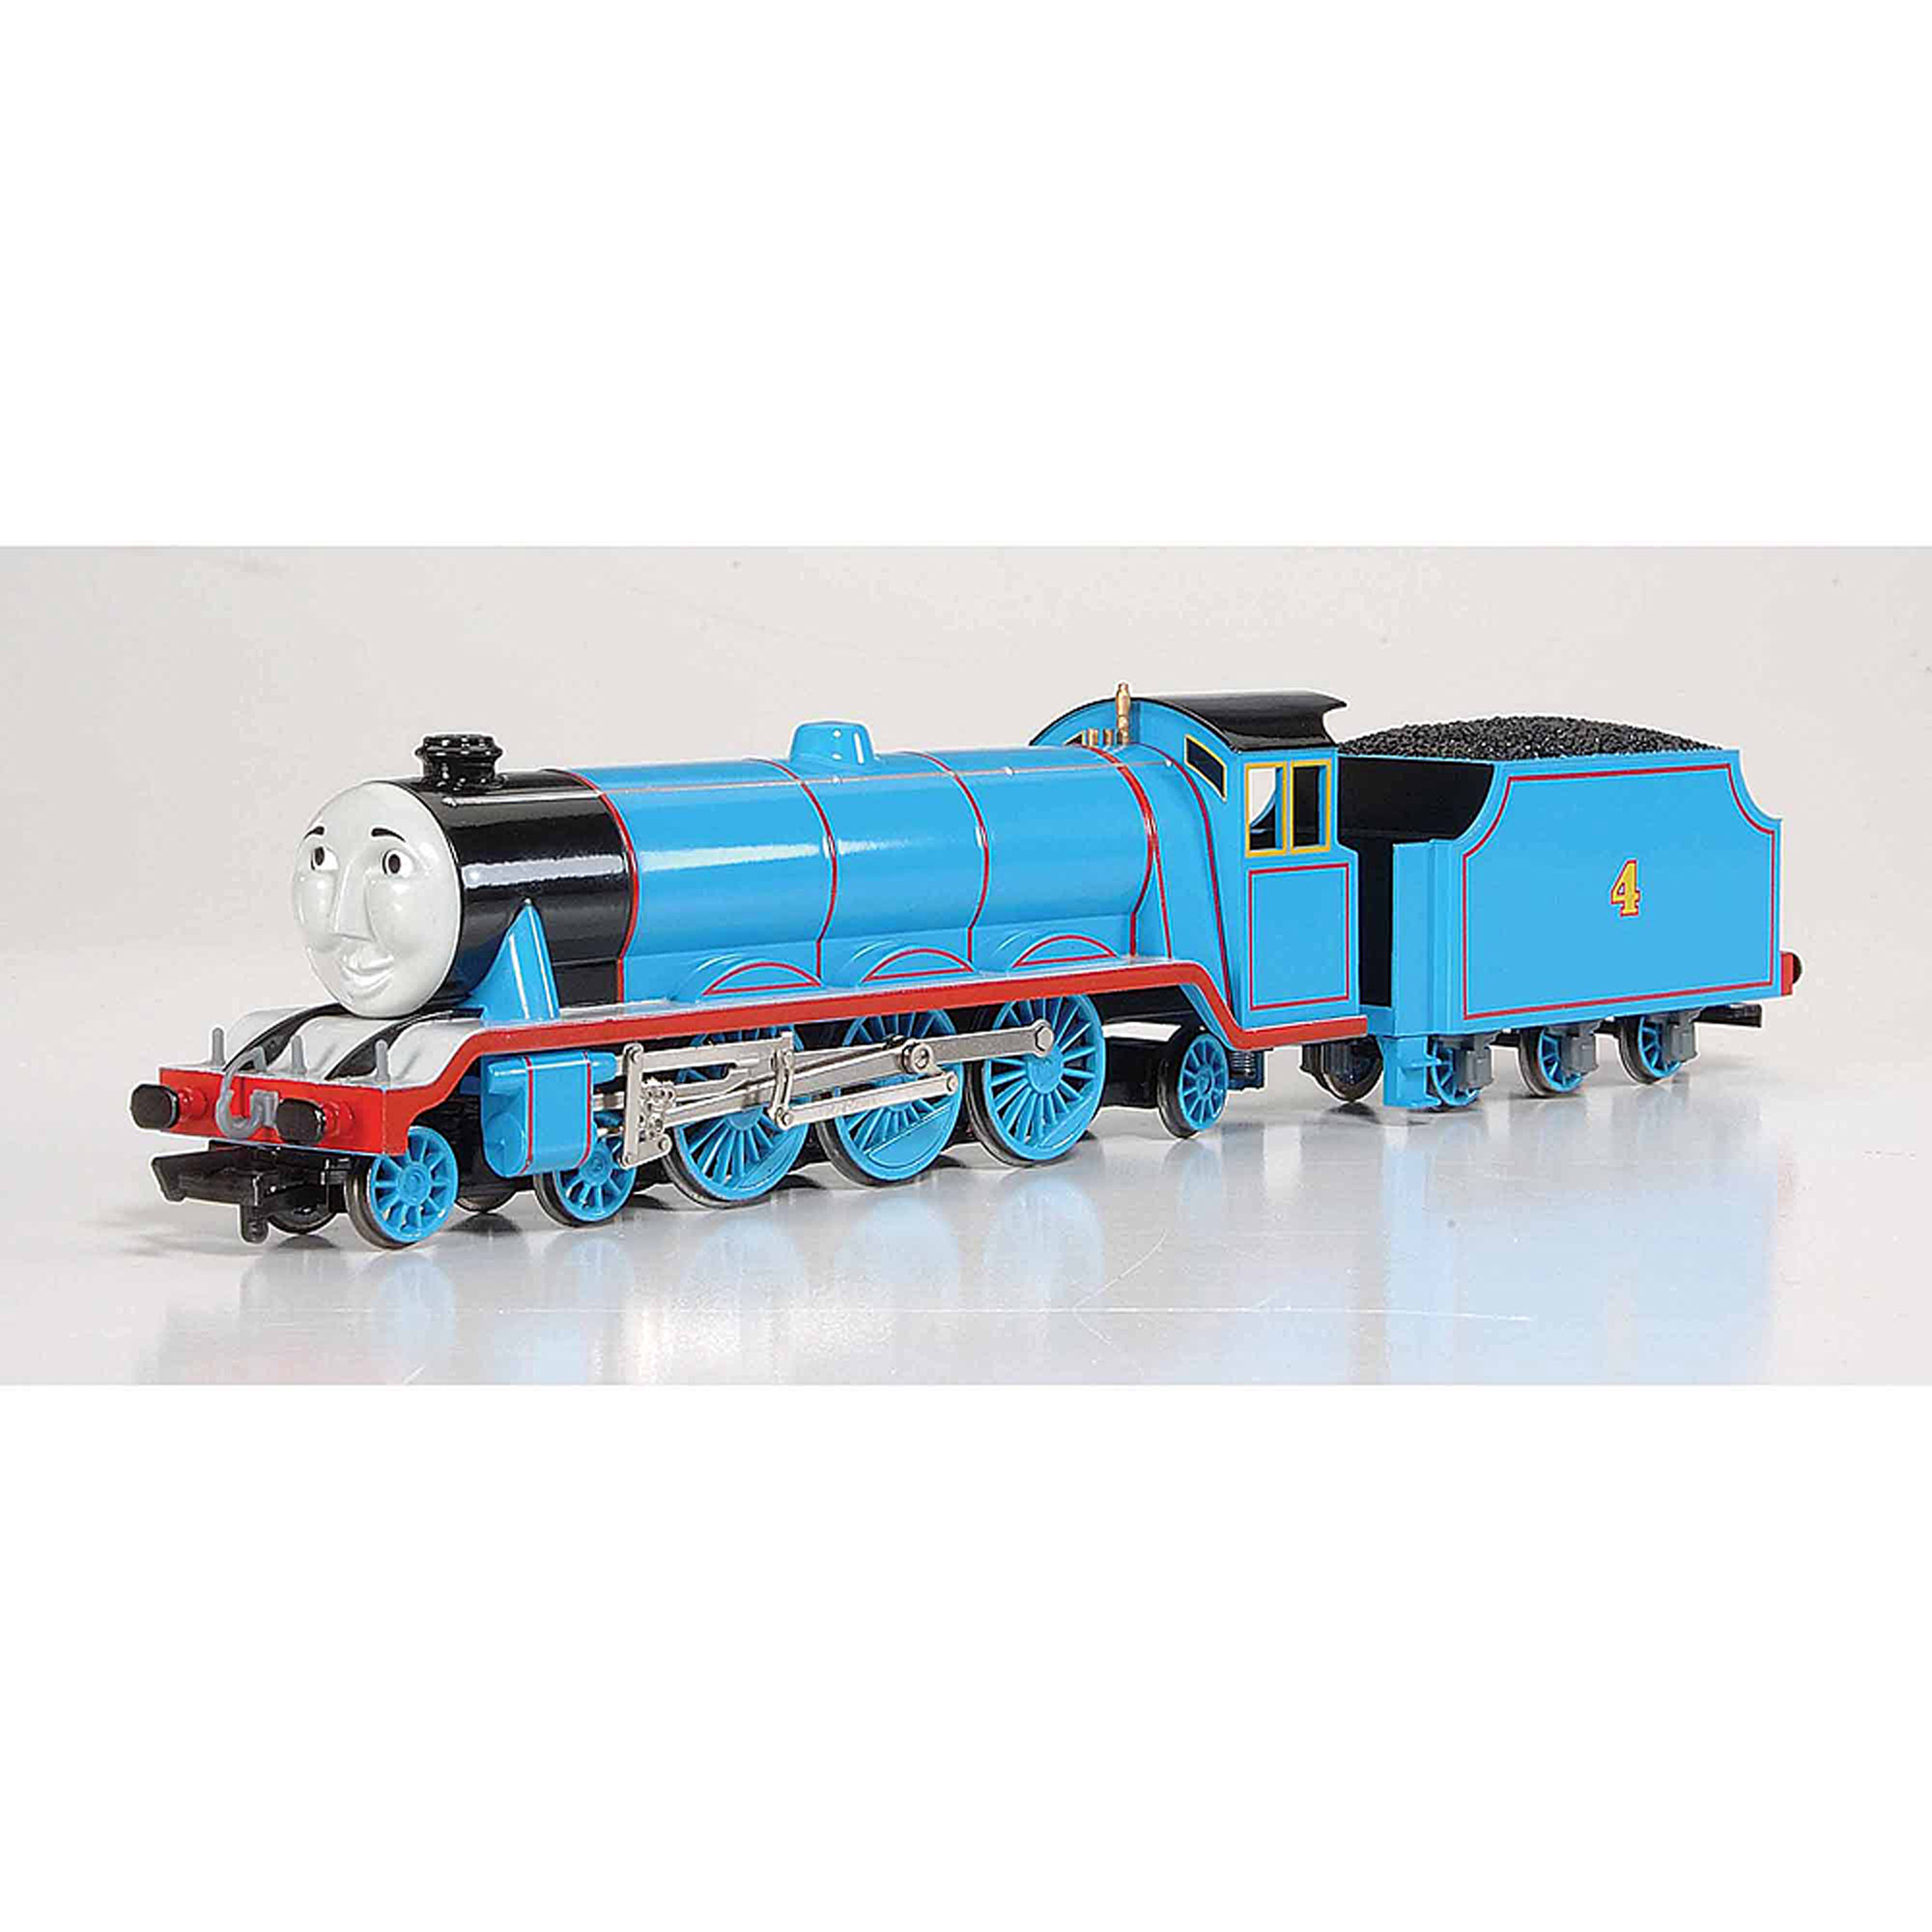 Bachmann Trains Thomas and Friends Gordon The Express Engine Locomotive with Moving Eyes, HO Scale Train by Bachmann